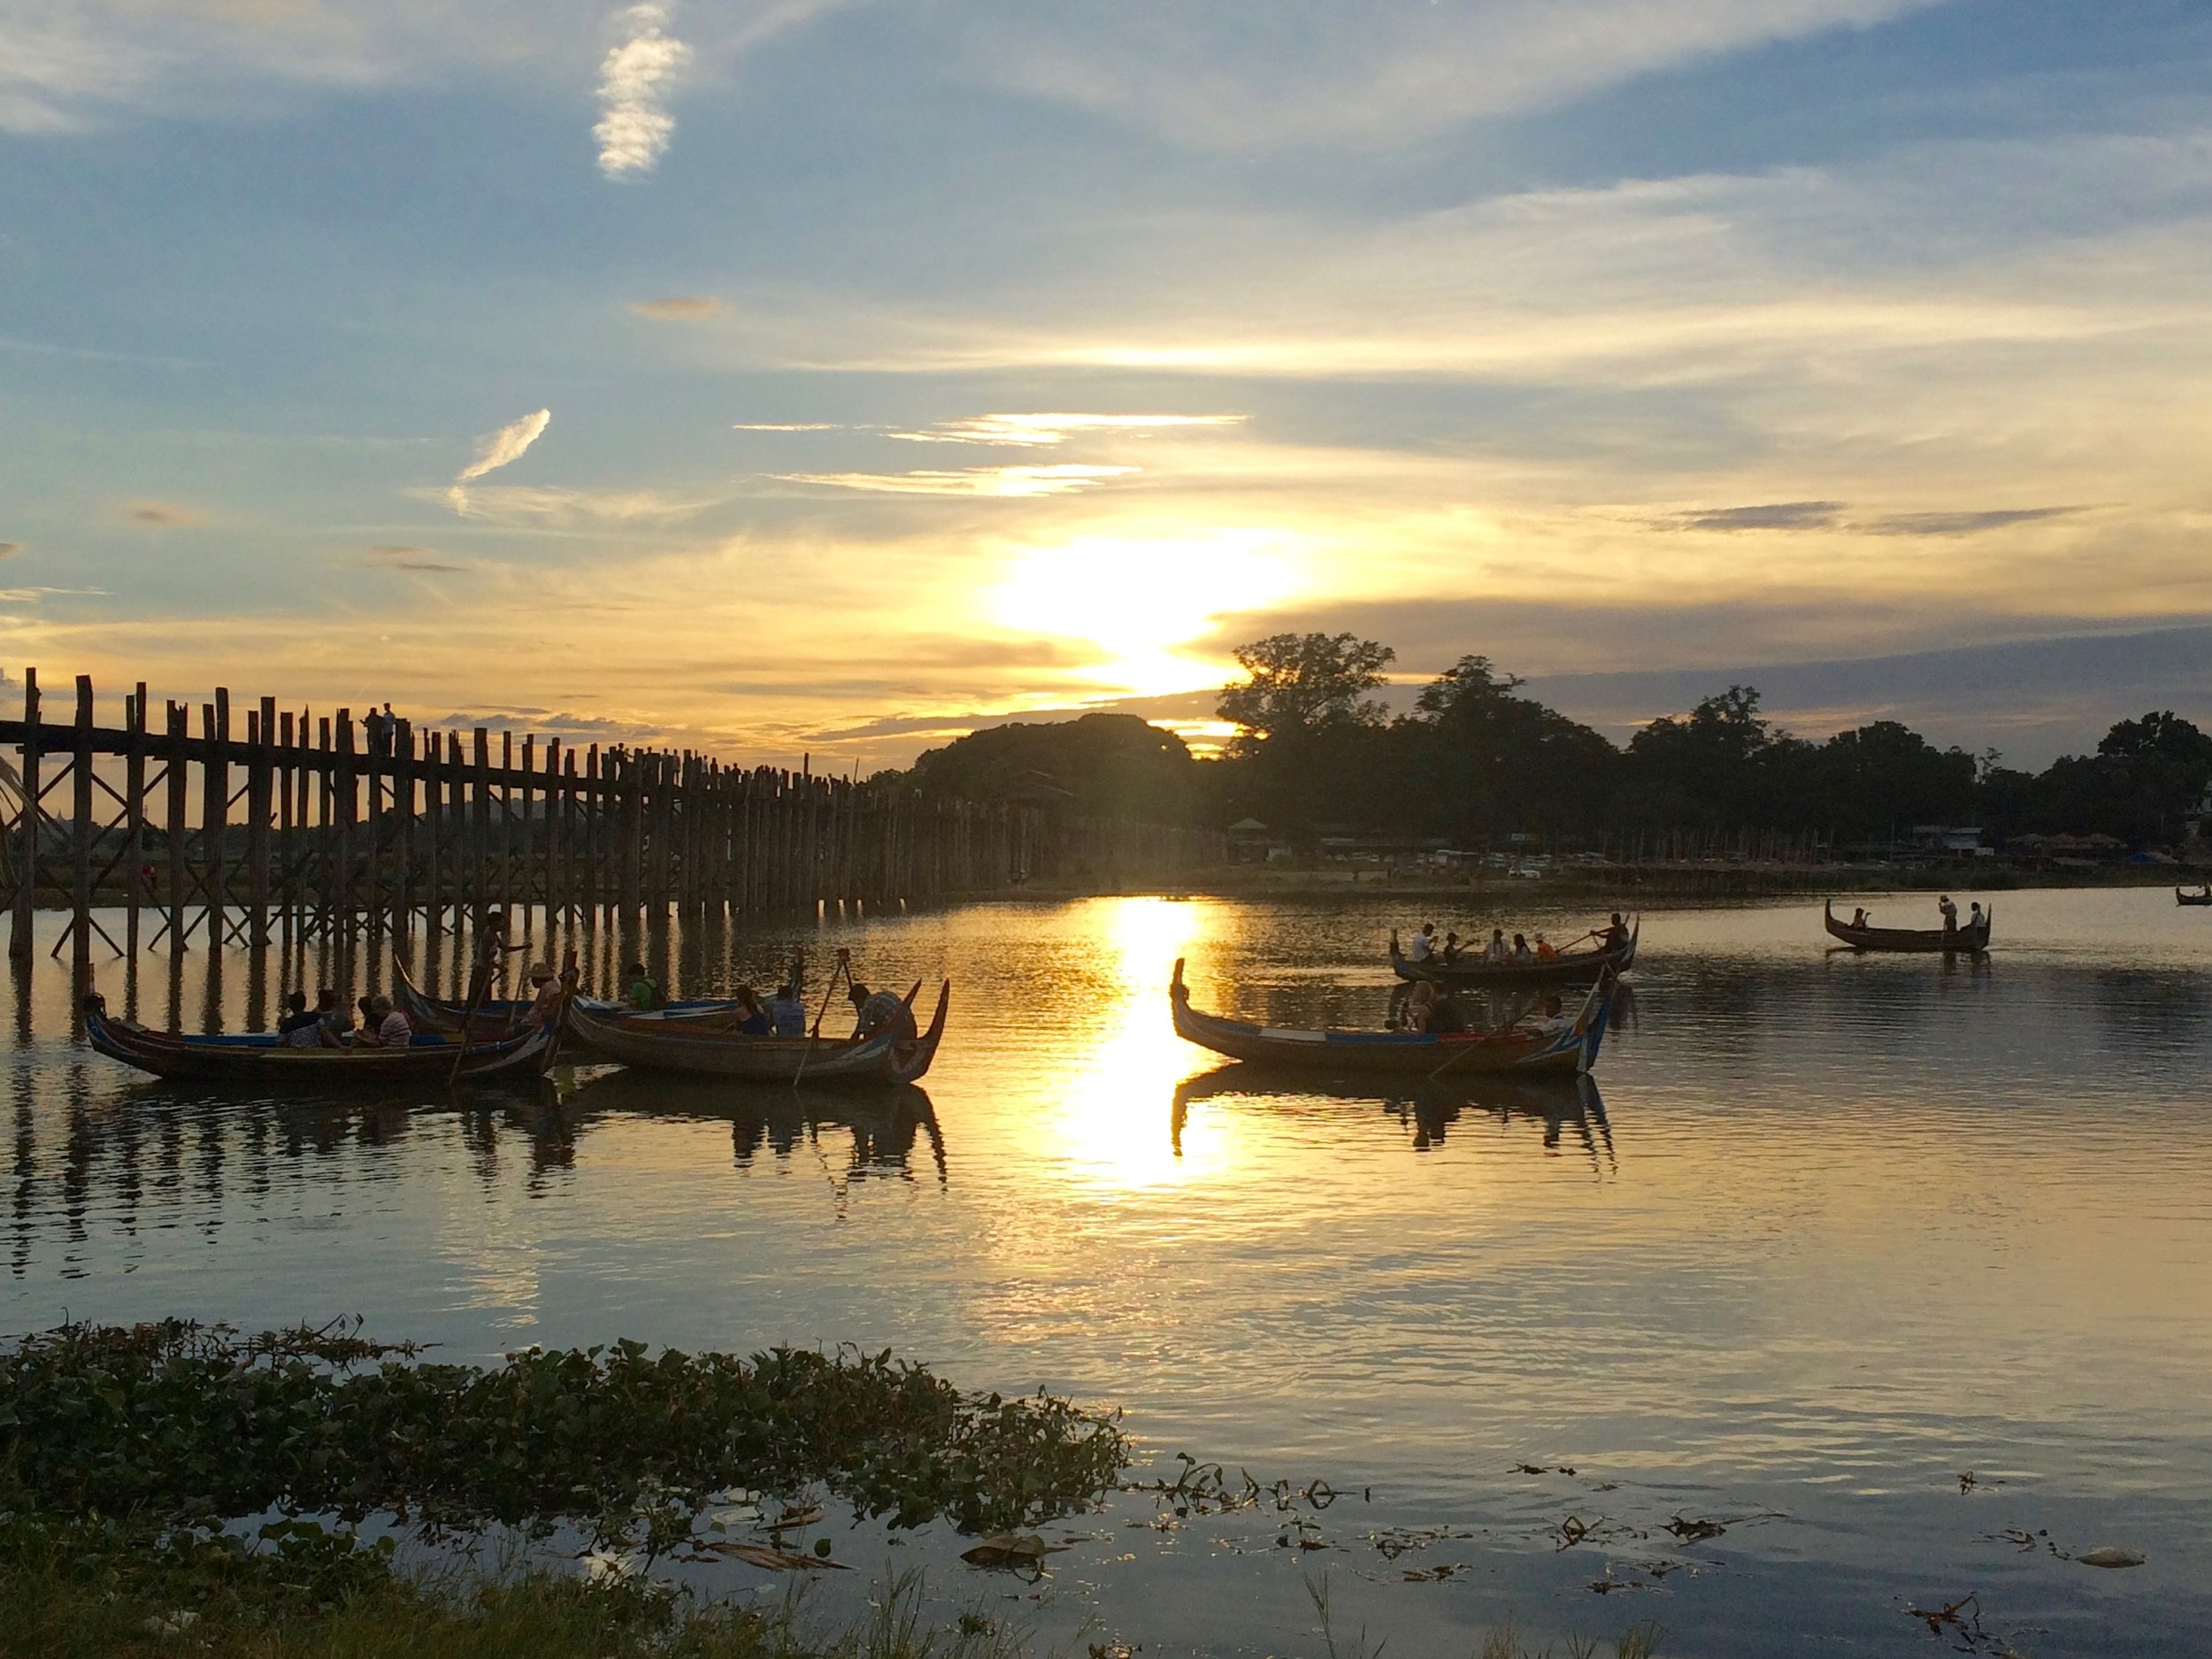 Sunset at the bamboo bridge